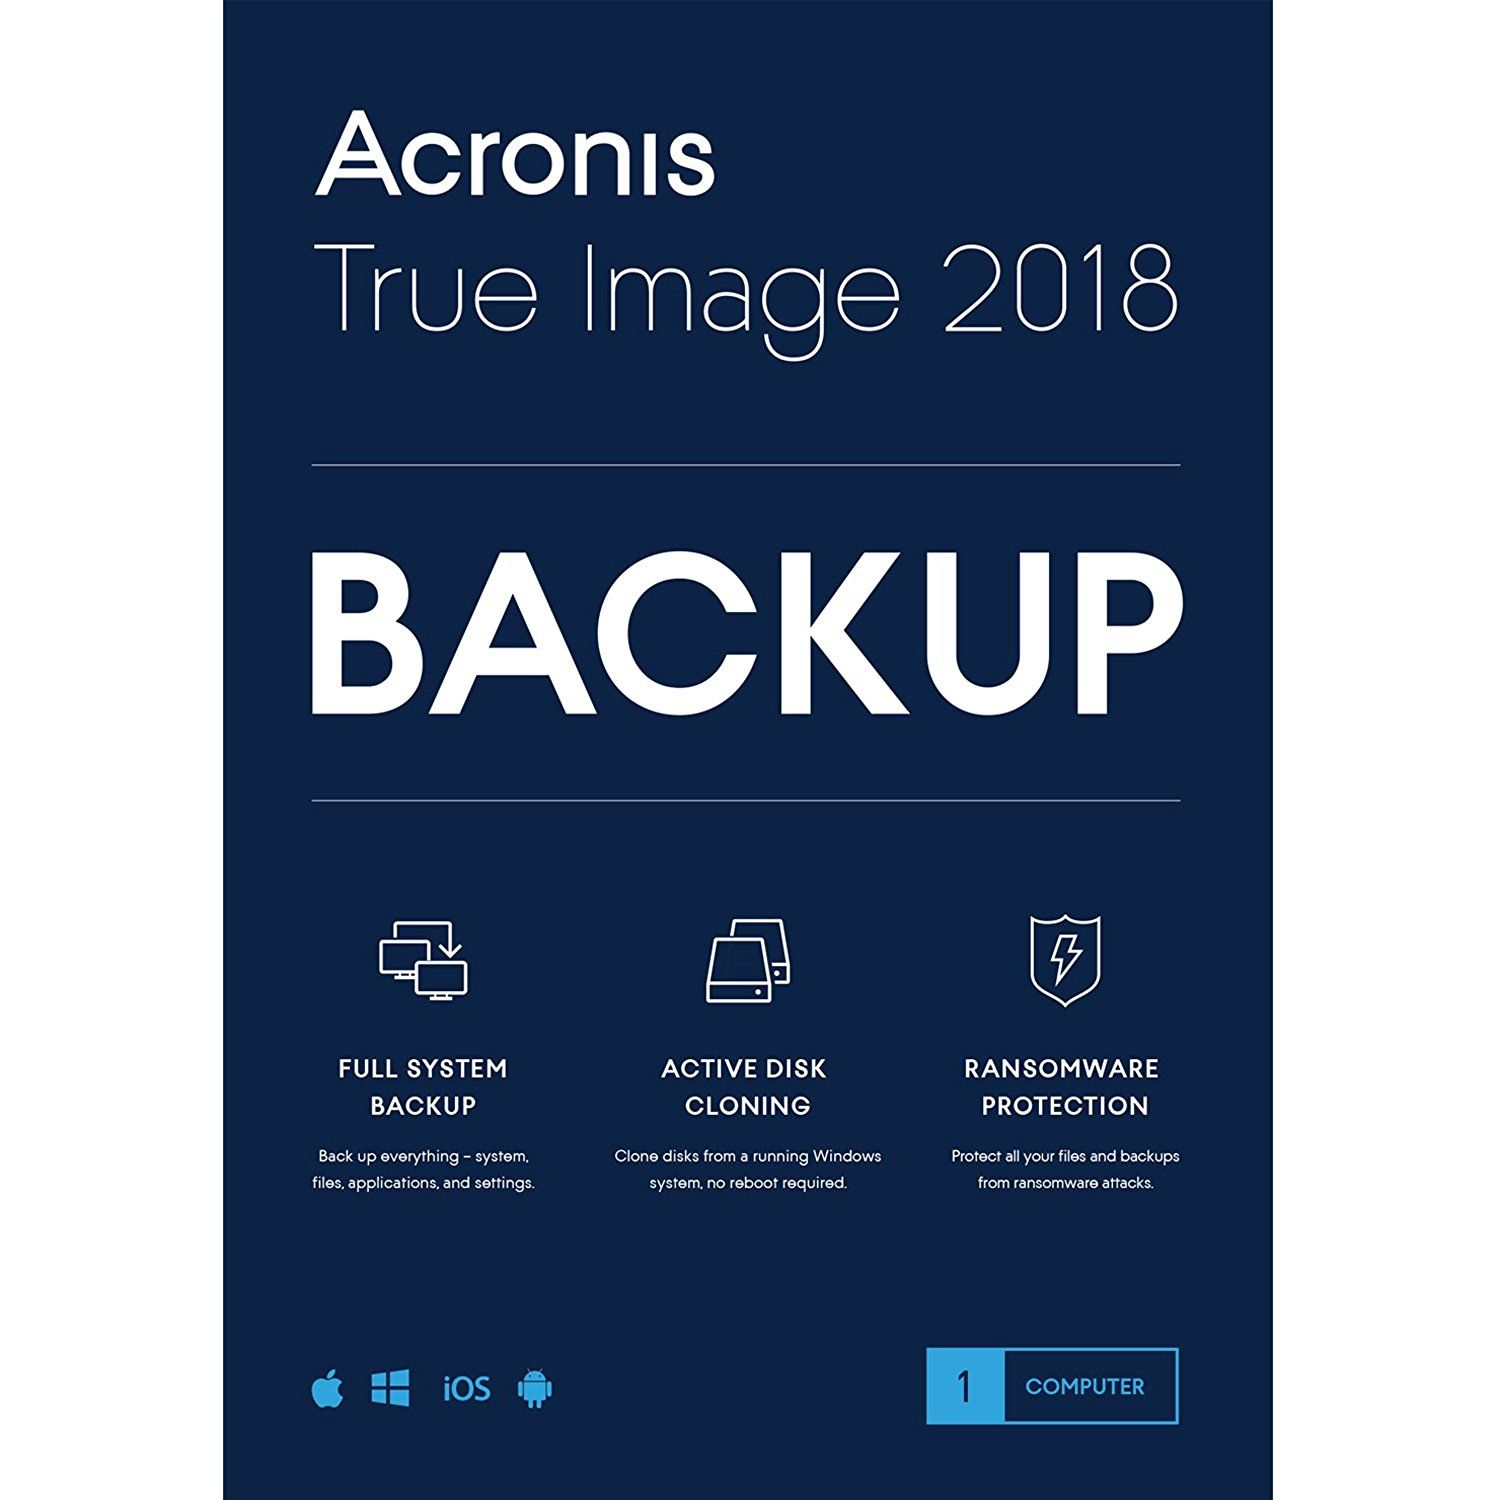 Acronis True Image 2018 Backup Software More Info Could Be